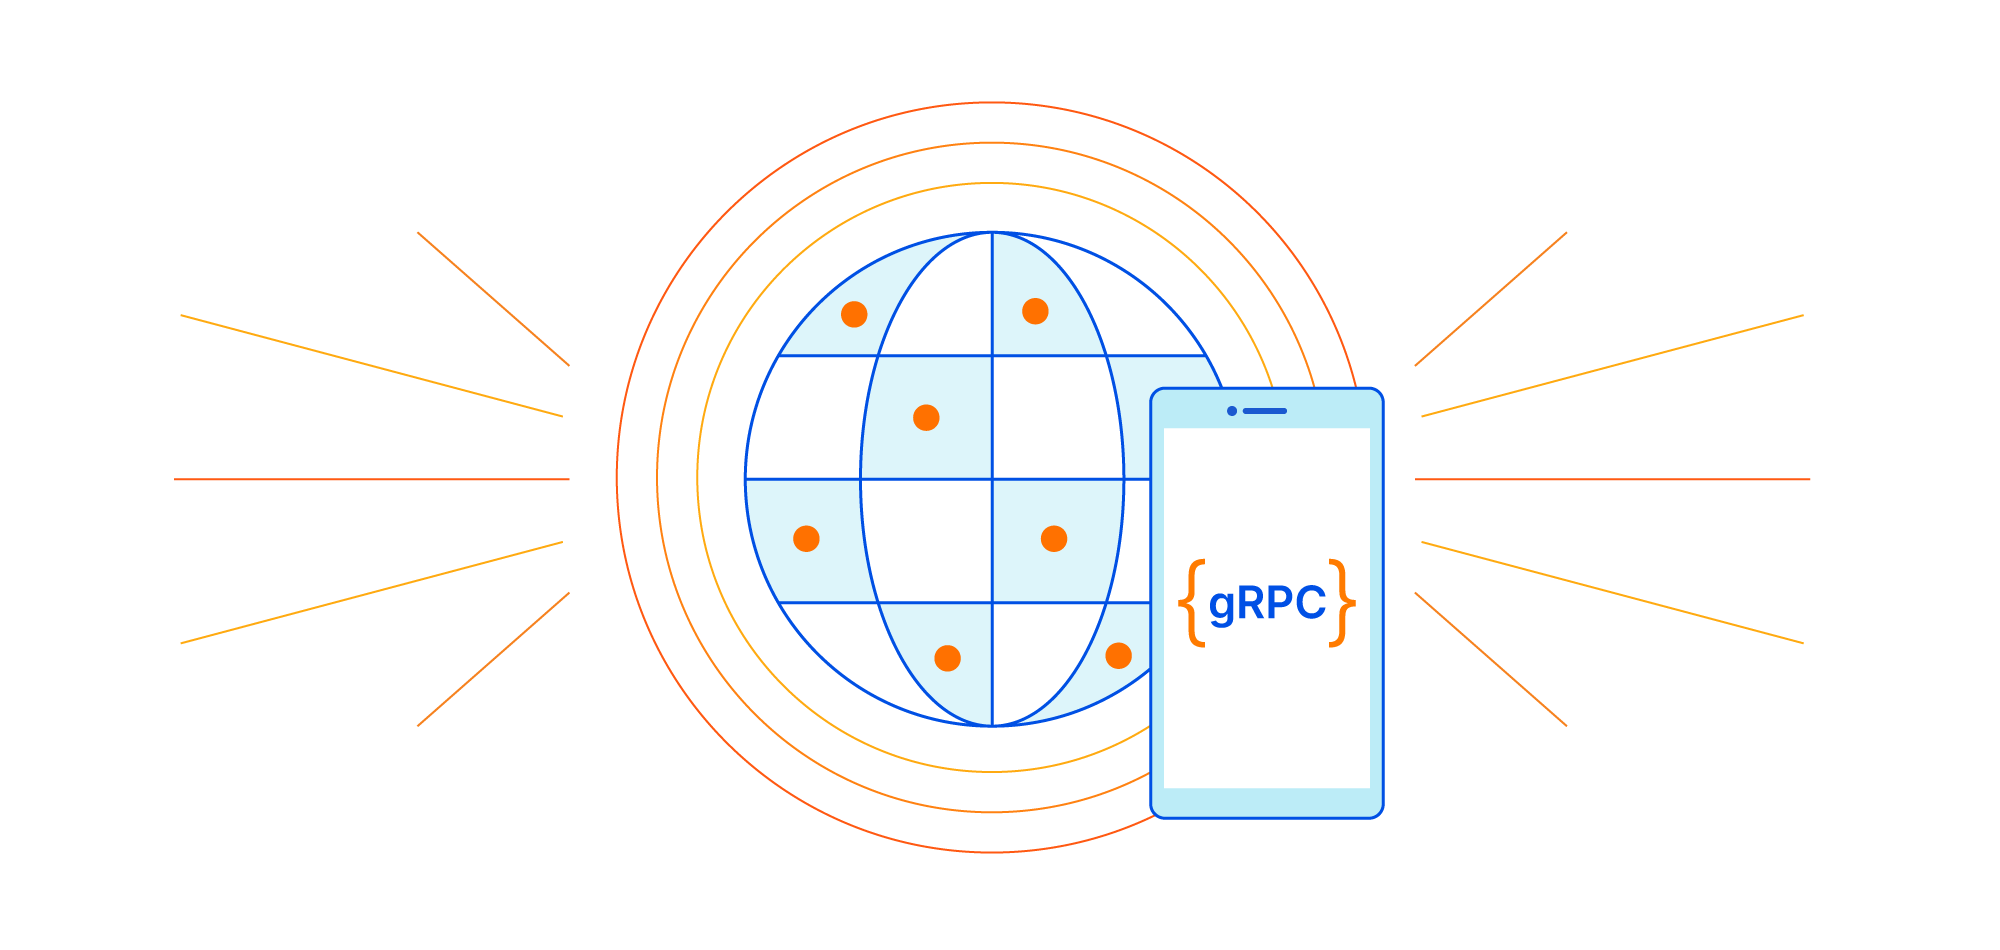 Road to gRPC